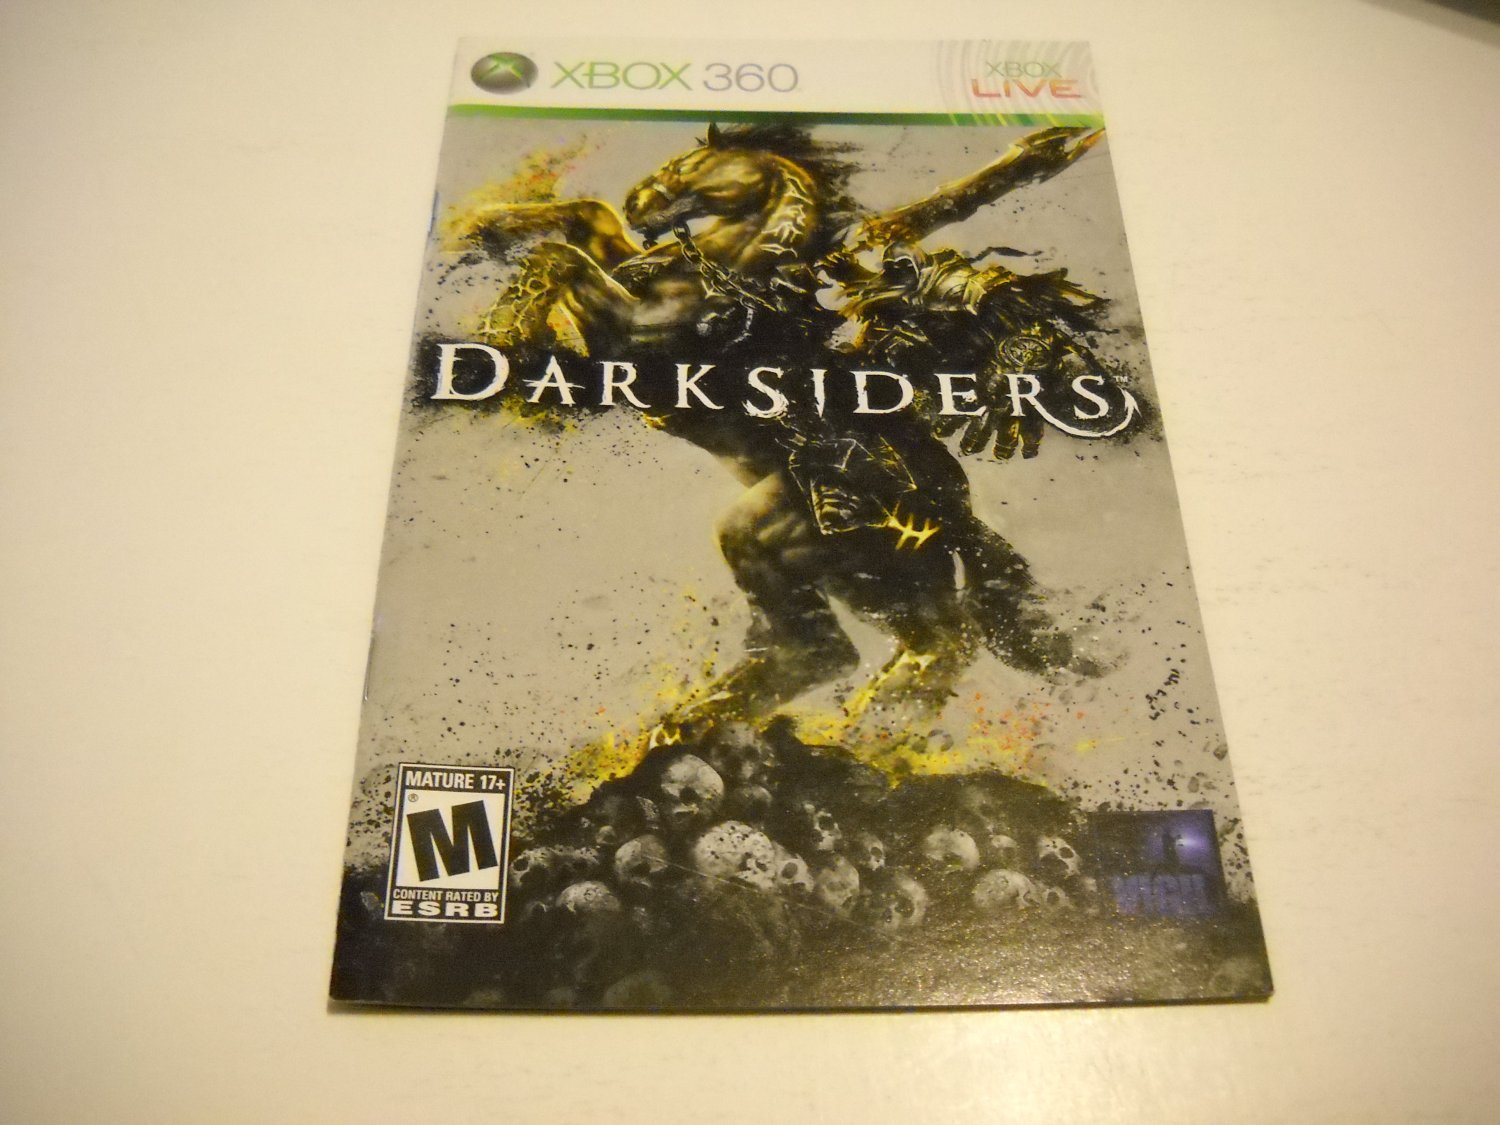 Manual ONLY ~  for Darksiders   - Xbox 360 Instruction Booklet